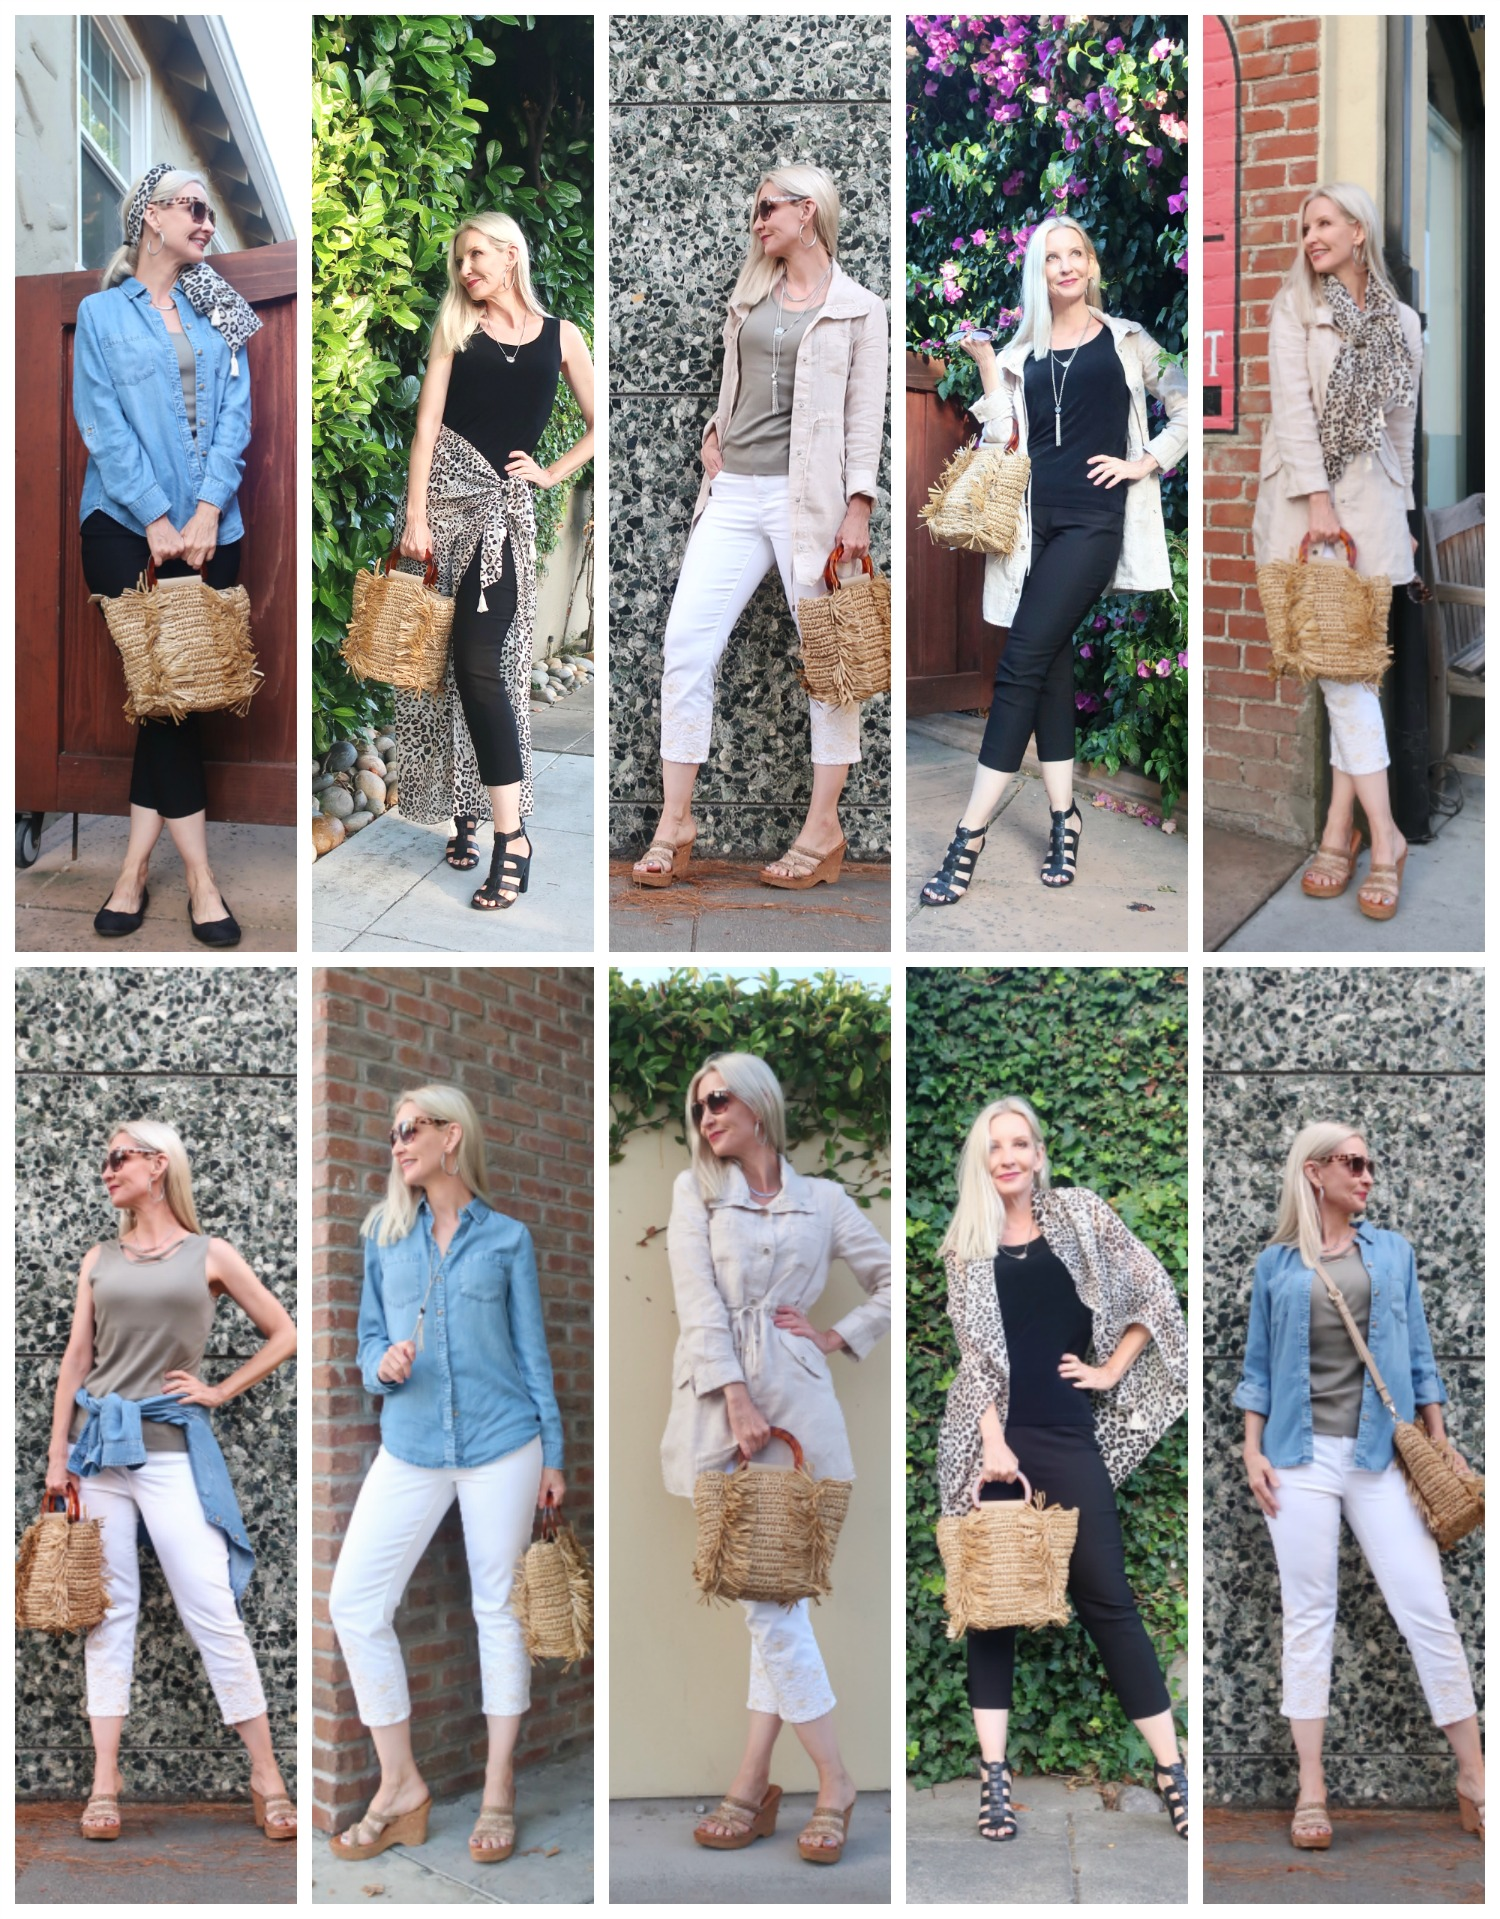 travel capsule wardrobe for middle aged women